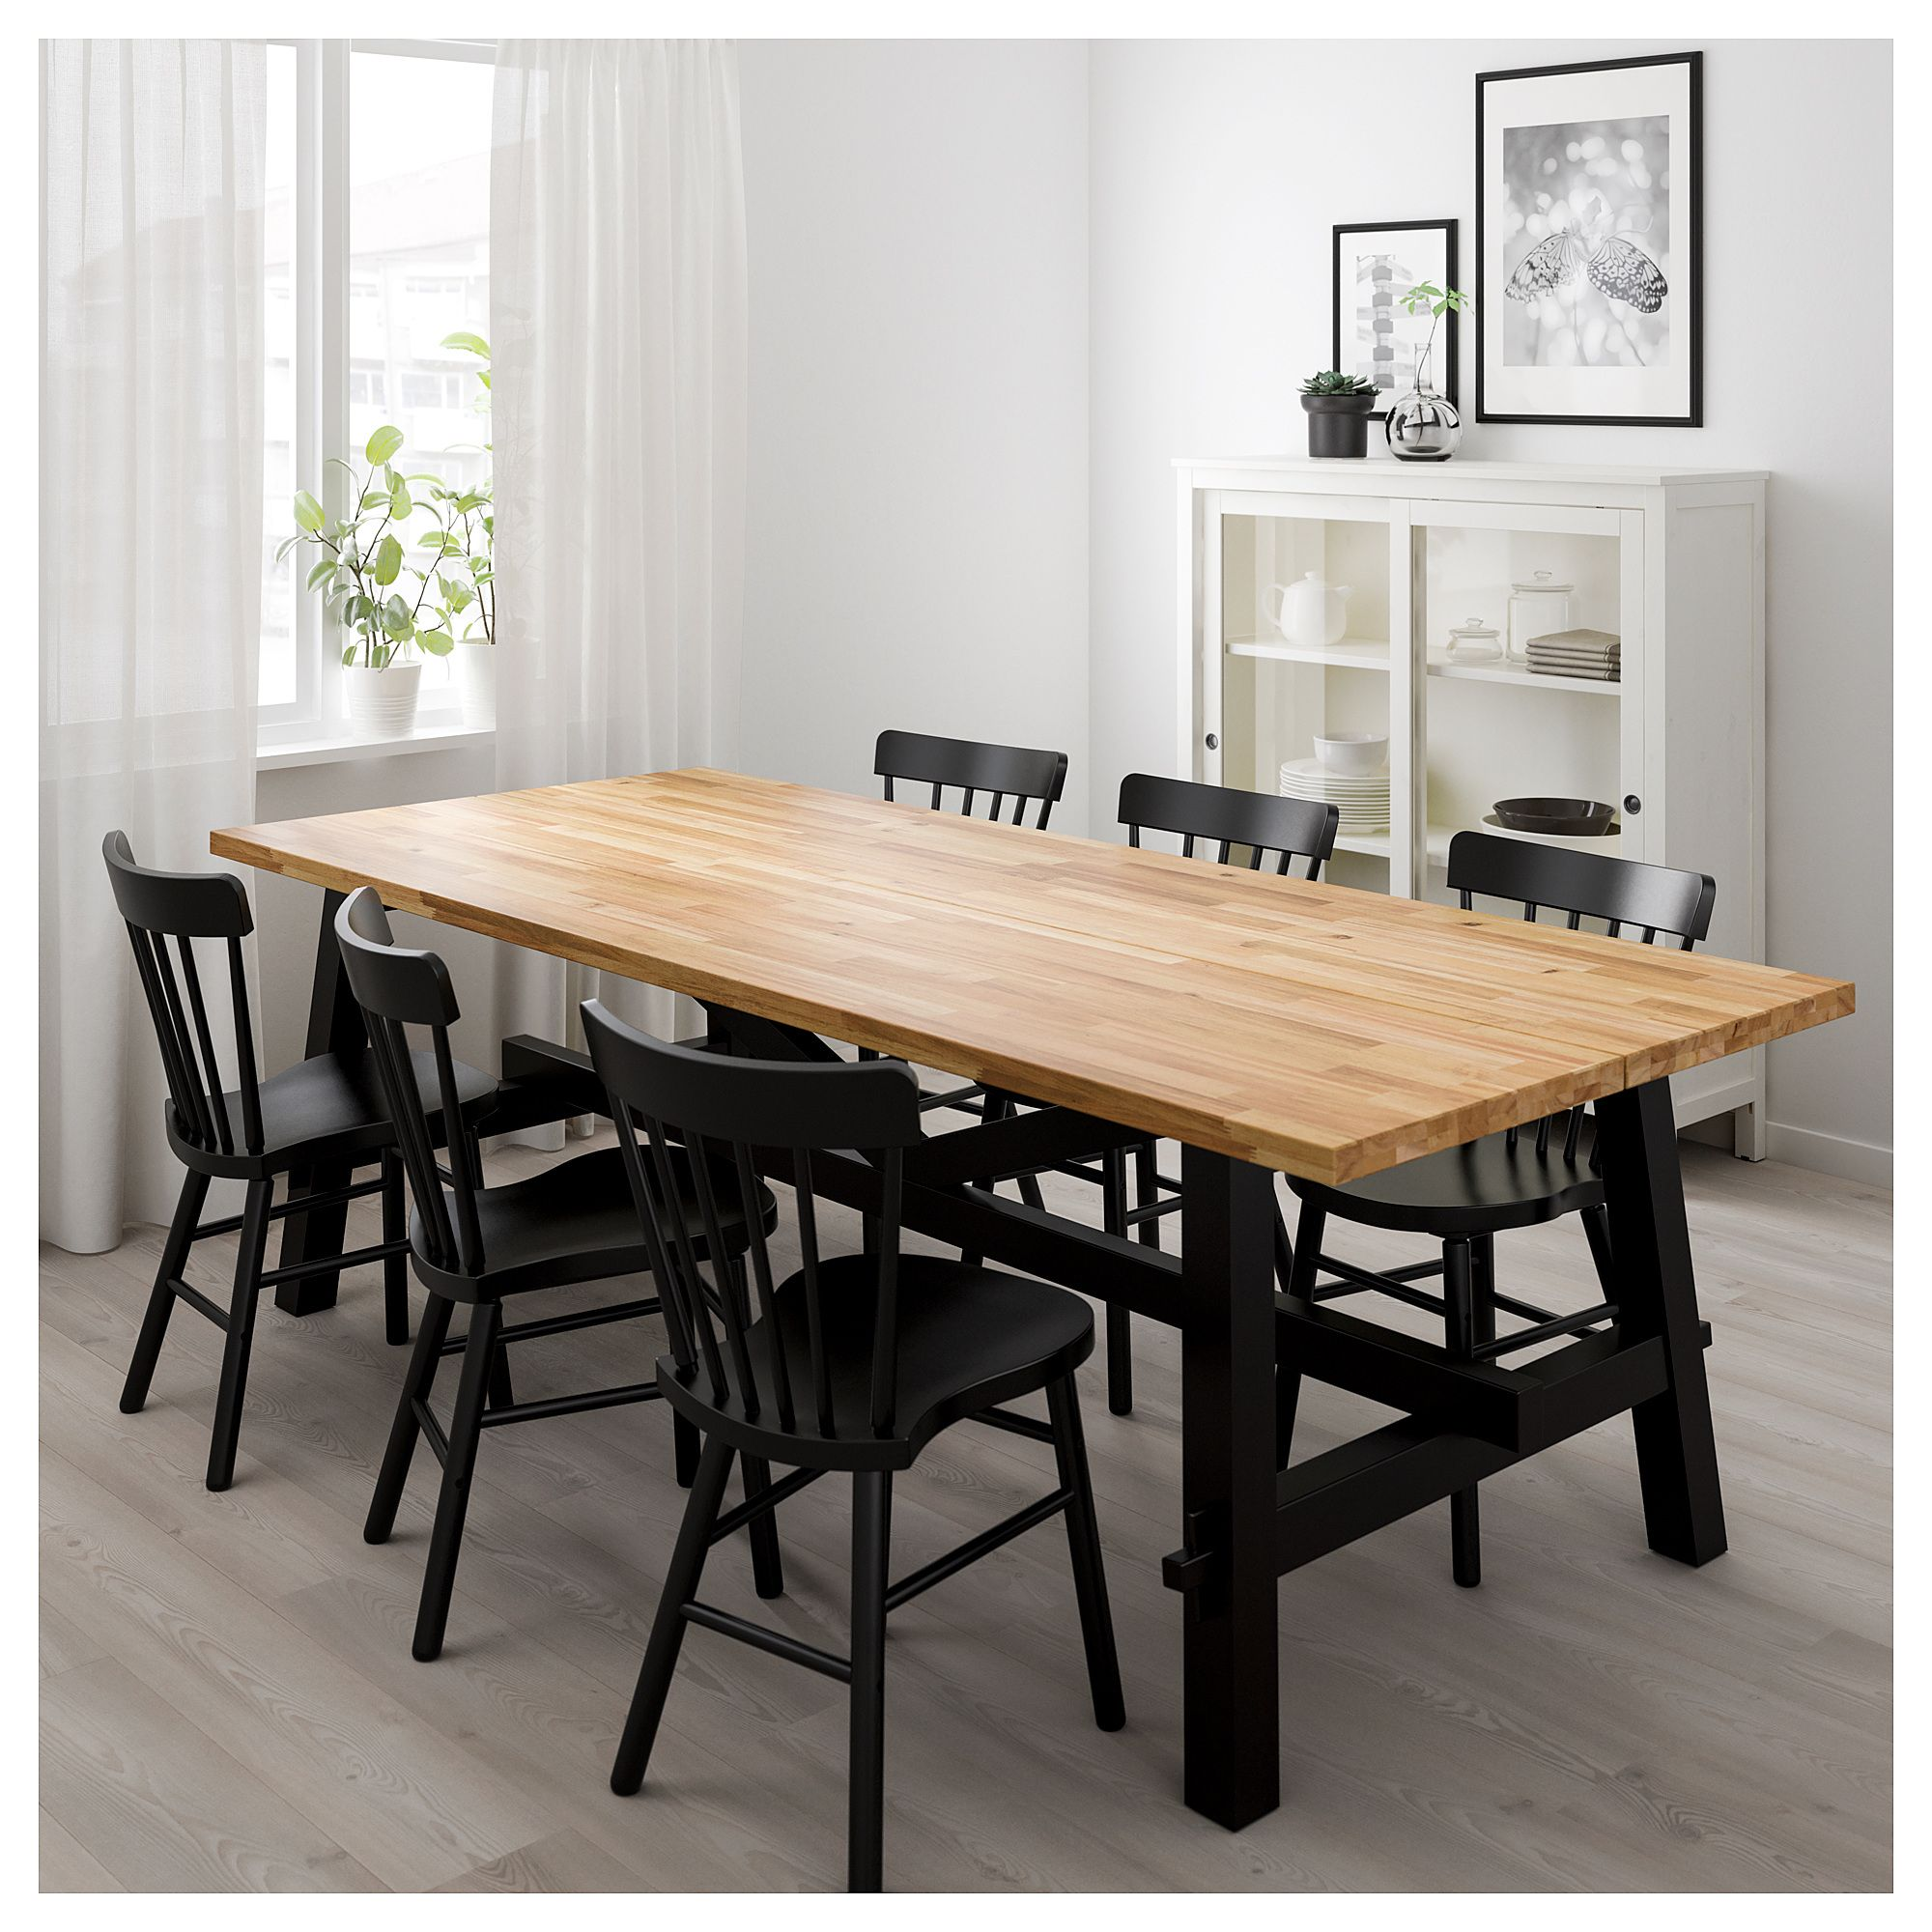 IKEA SKOGSTA Acacia Dining table in 2019 | Ikea dining, Ikea ...